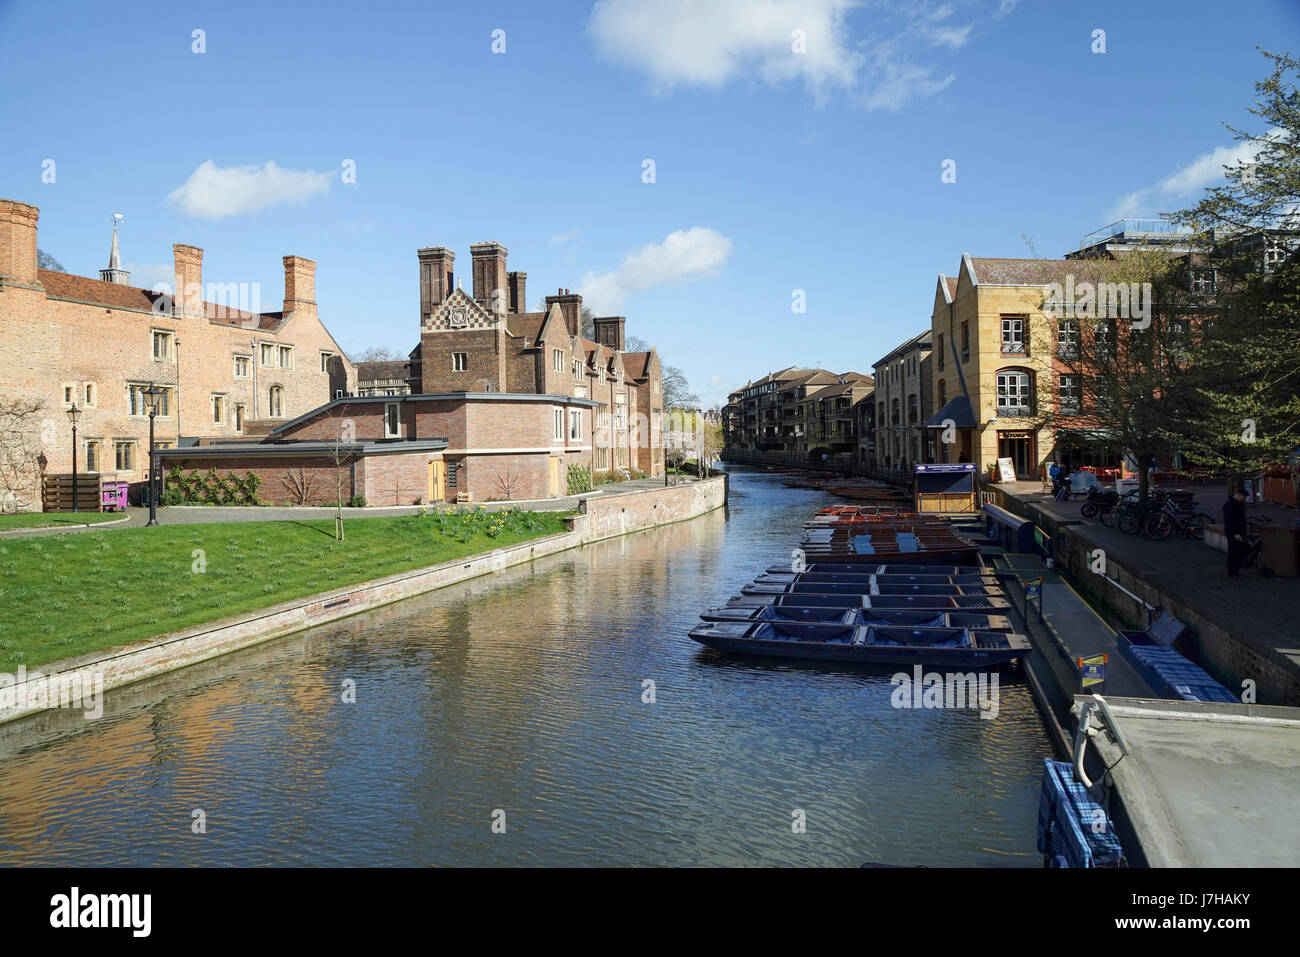 Ramsay Hall, Magdalene College, River Cam, Cambridge, UK -1 - Stock Image